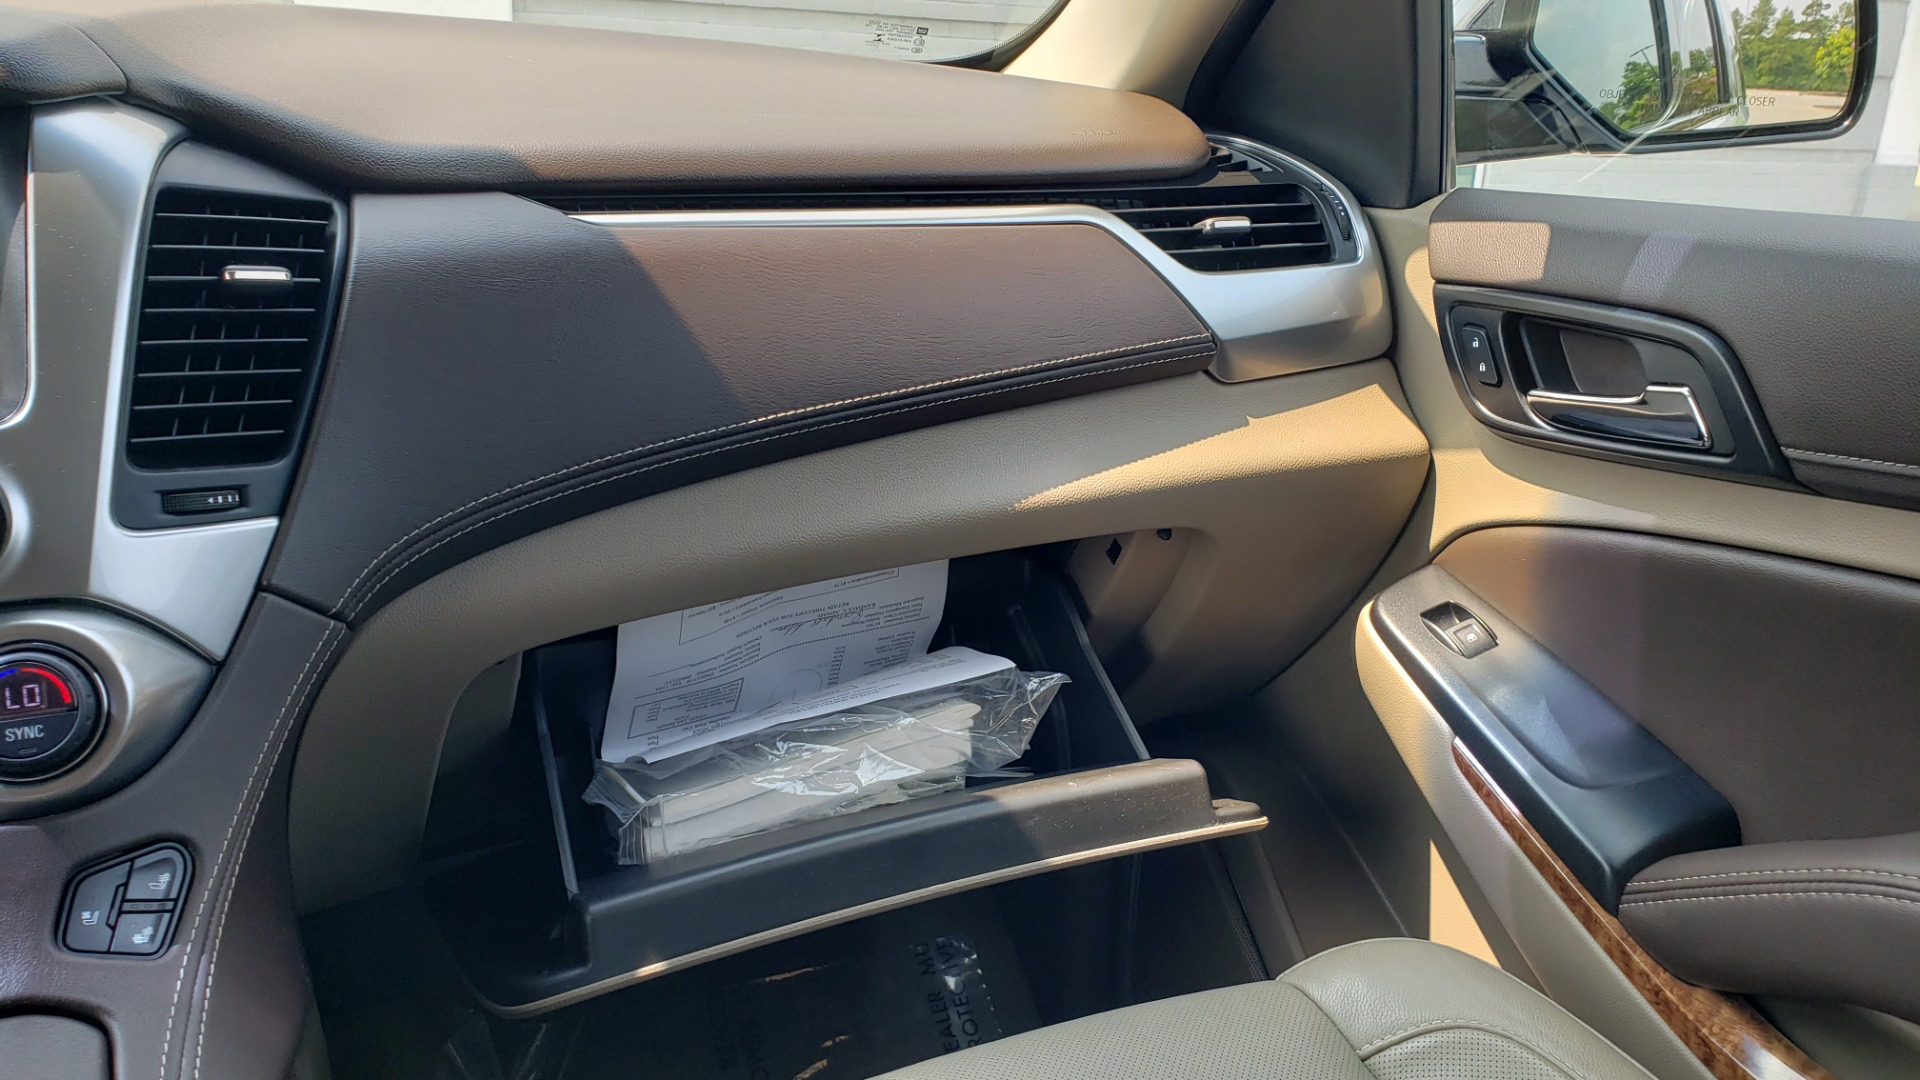 Used 2018 Chevrolet TAHOE PREMIER 4WD / NAV / SUNROOF / BOSE / 3-ROW / HUD / REARVIEW for sale $63,995 at Formula Imports in Charlotte NC 28227 56